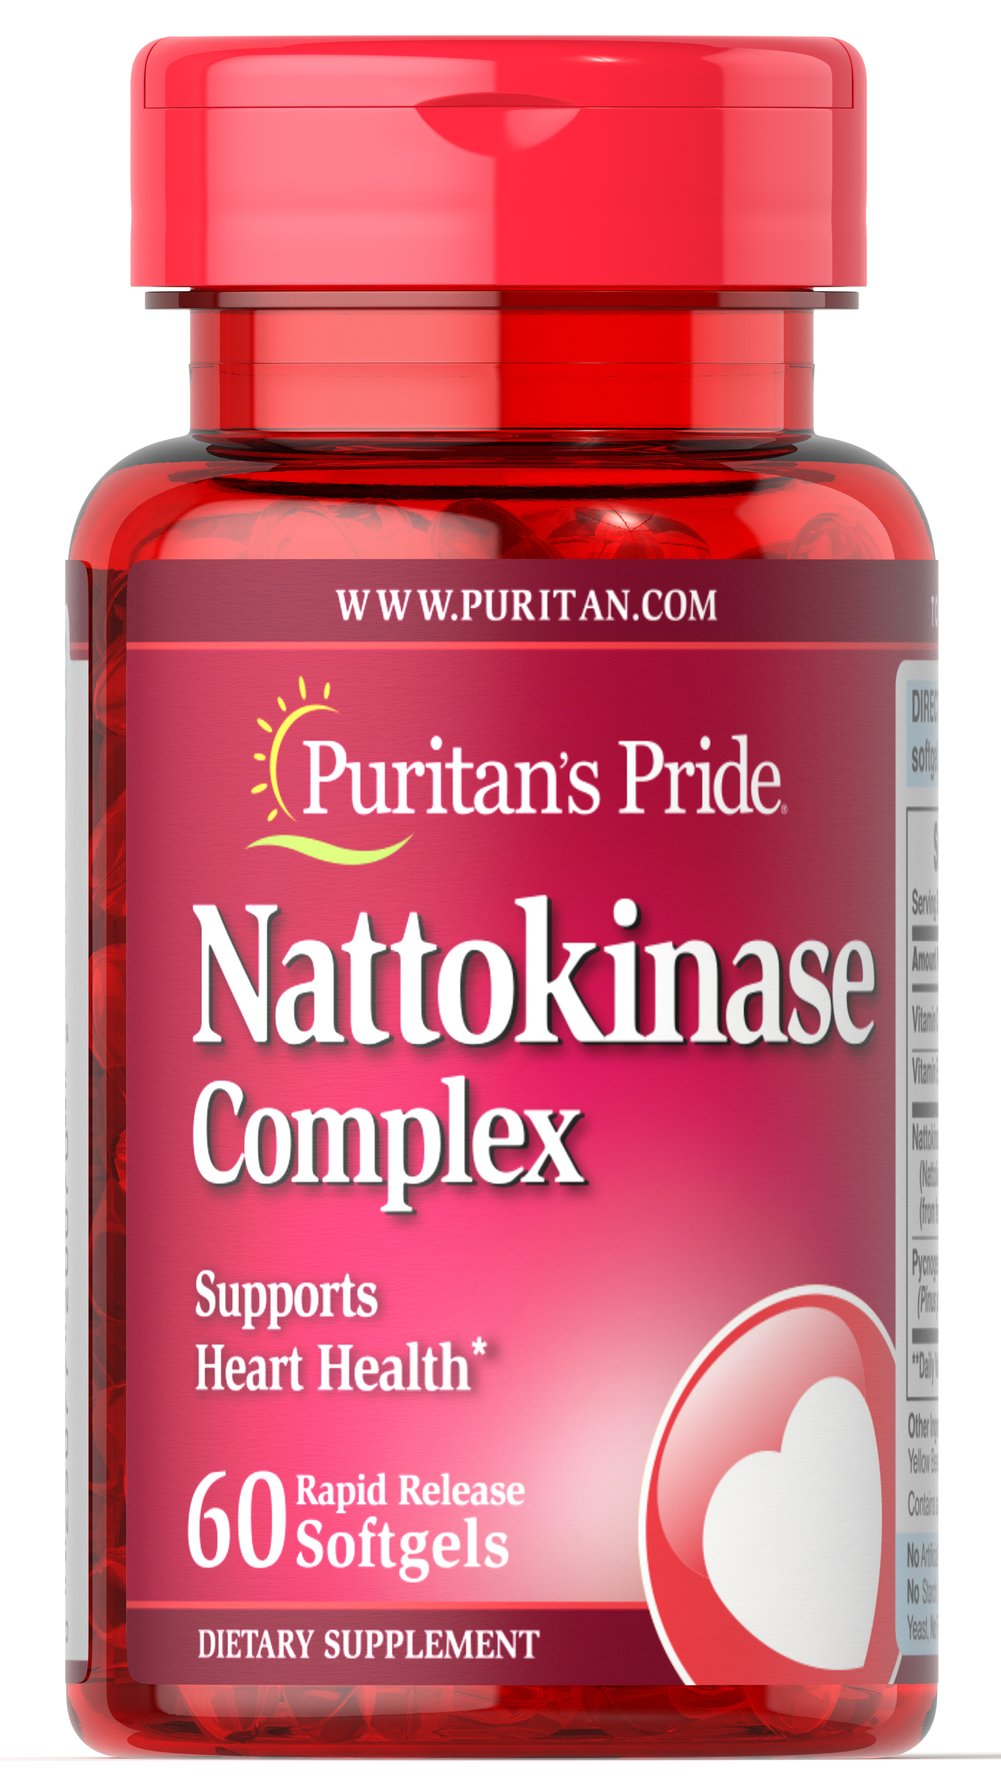 Nattokinase 100 mg Complex What the Japanese Know<br><br>The Japanese diet has long been known as heart healthy, in large part because it contains substantial amounts of soy-based nutrients.** Nattokinase is a beneficial enzyme derived from the fermented Japanese soybean called Natto, and is provided here in a rapid-release softgel.<br>• Nattokinase supports Heart and Circulatory Health**<br> 60 Softgels 100 mg $48.99